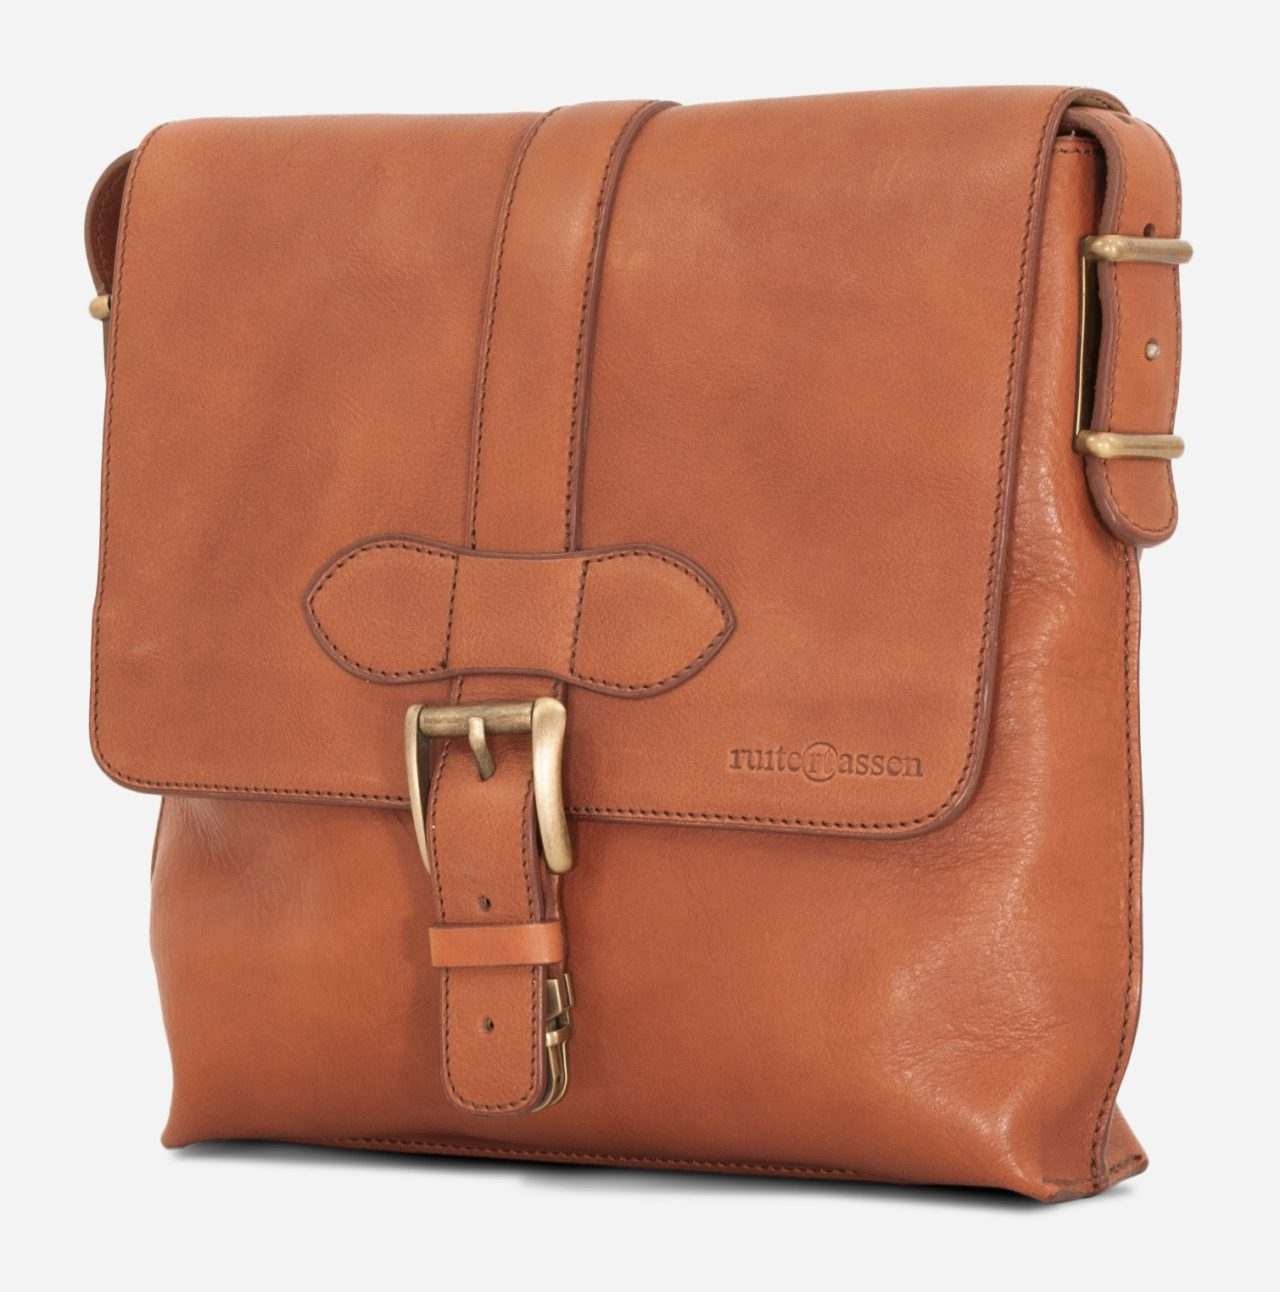 Side view of the luxury soft vegetable-tanned brown leather crossbody bag for men.